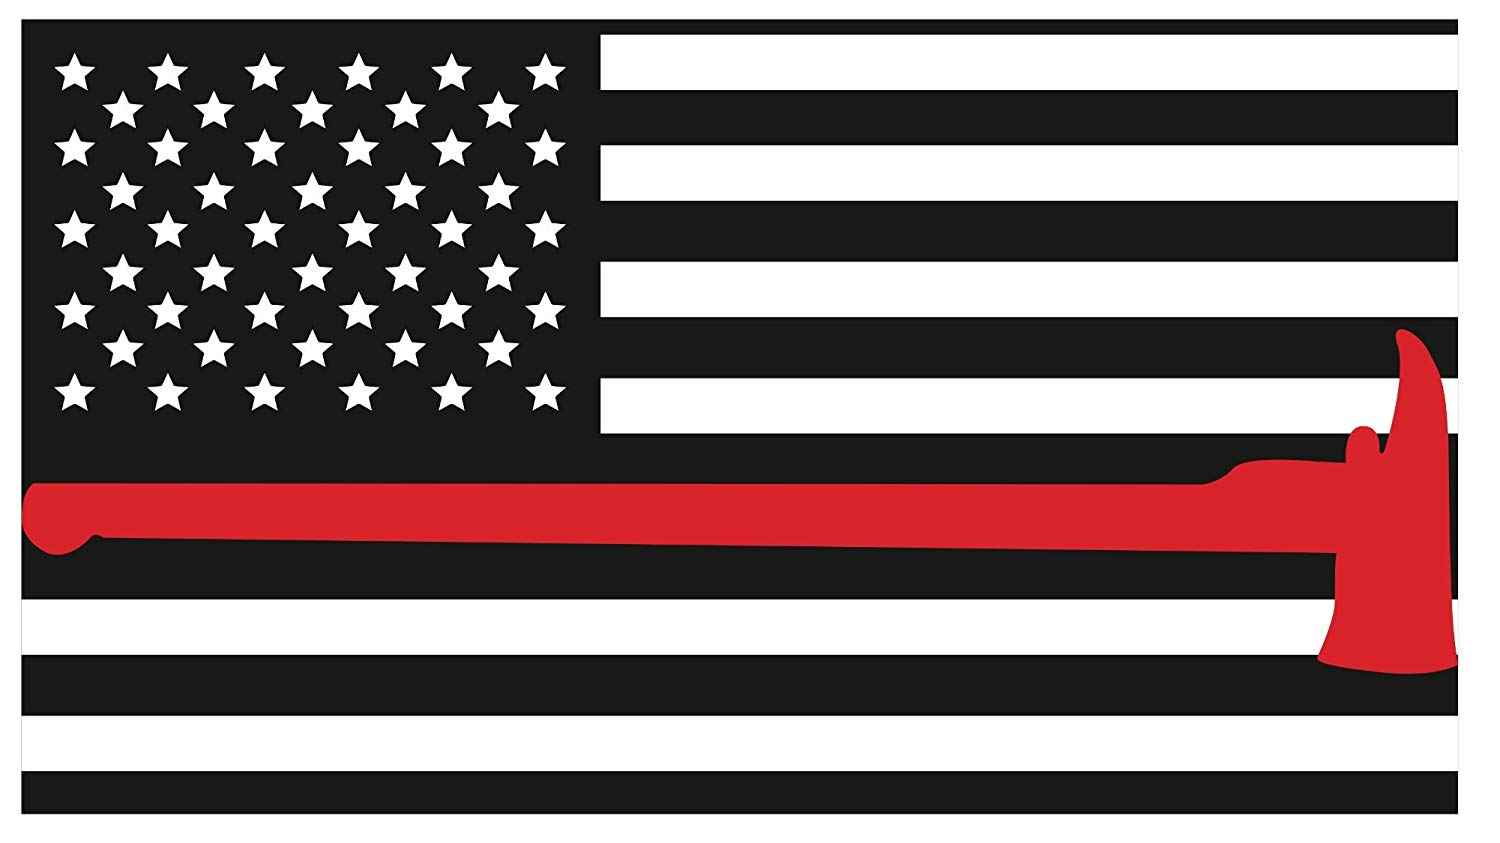 K9King Fire Department Red Line Axe Flags 3M Vinyl Reflective Decal, Black,  White & Red Flag Sticker Honoring The Courage of Our Firefighters, EMT &.